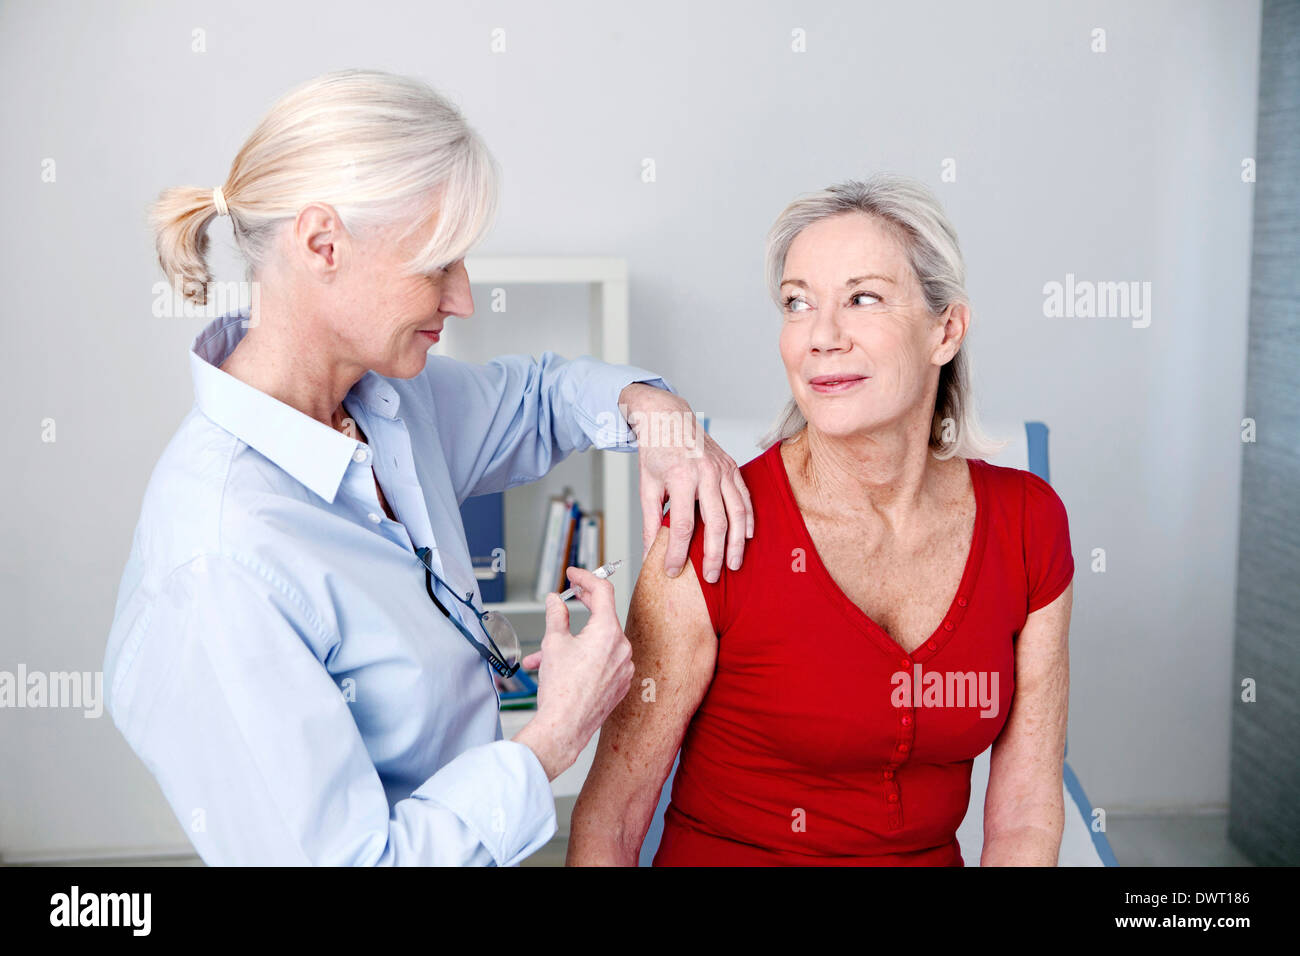 Vaccinating an elderly person Stock Photo